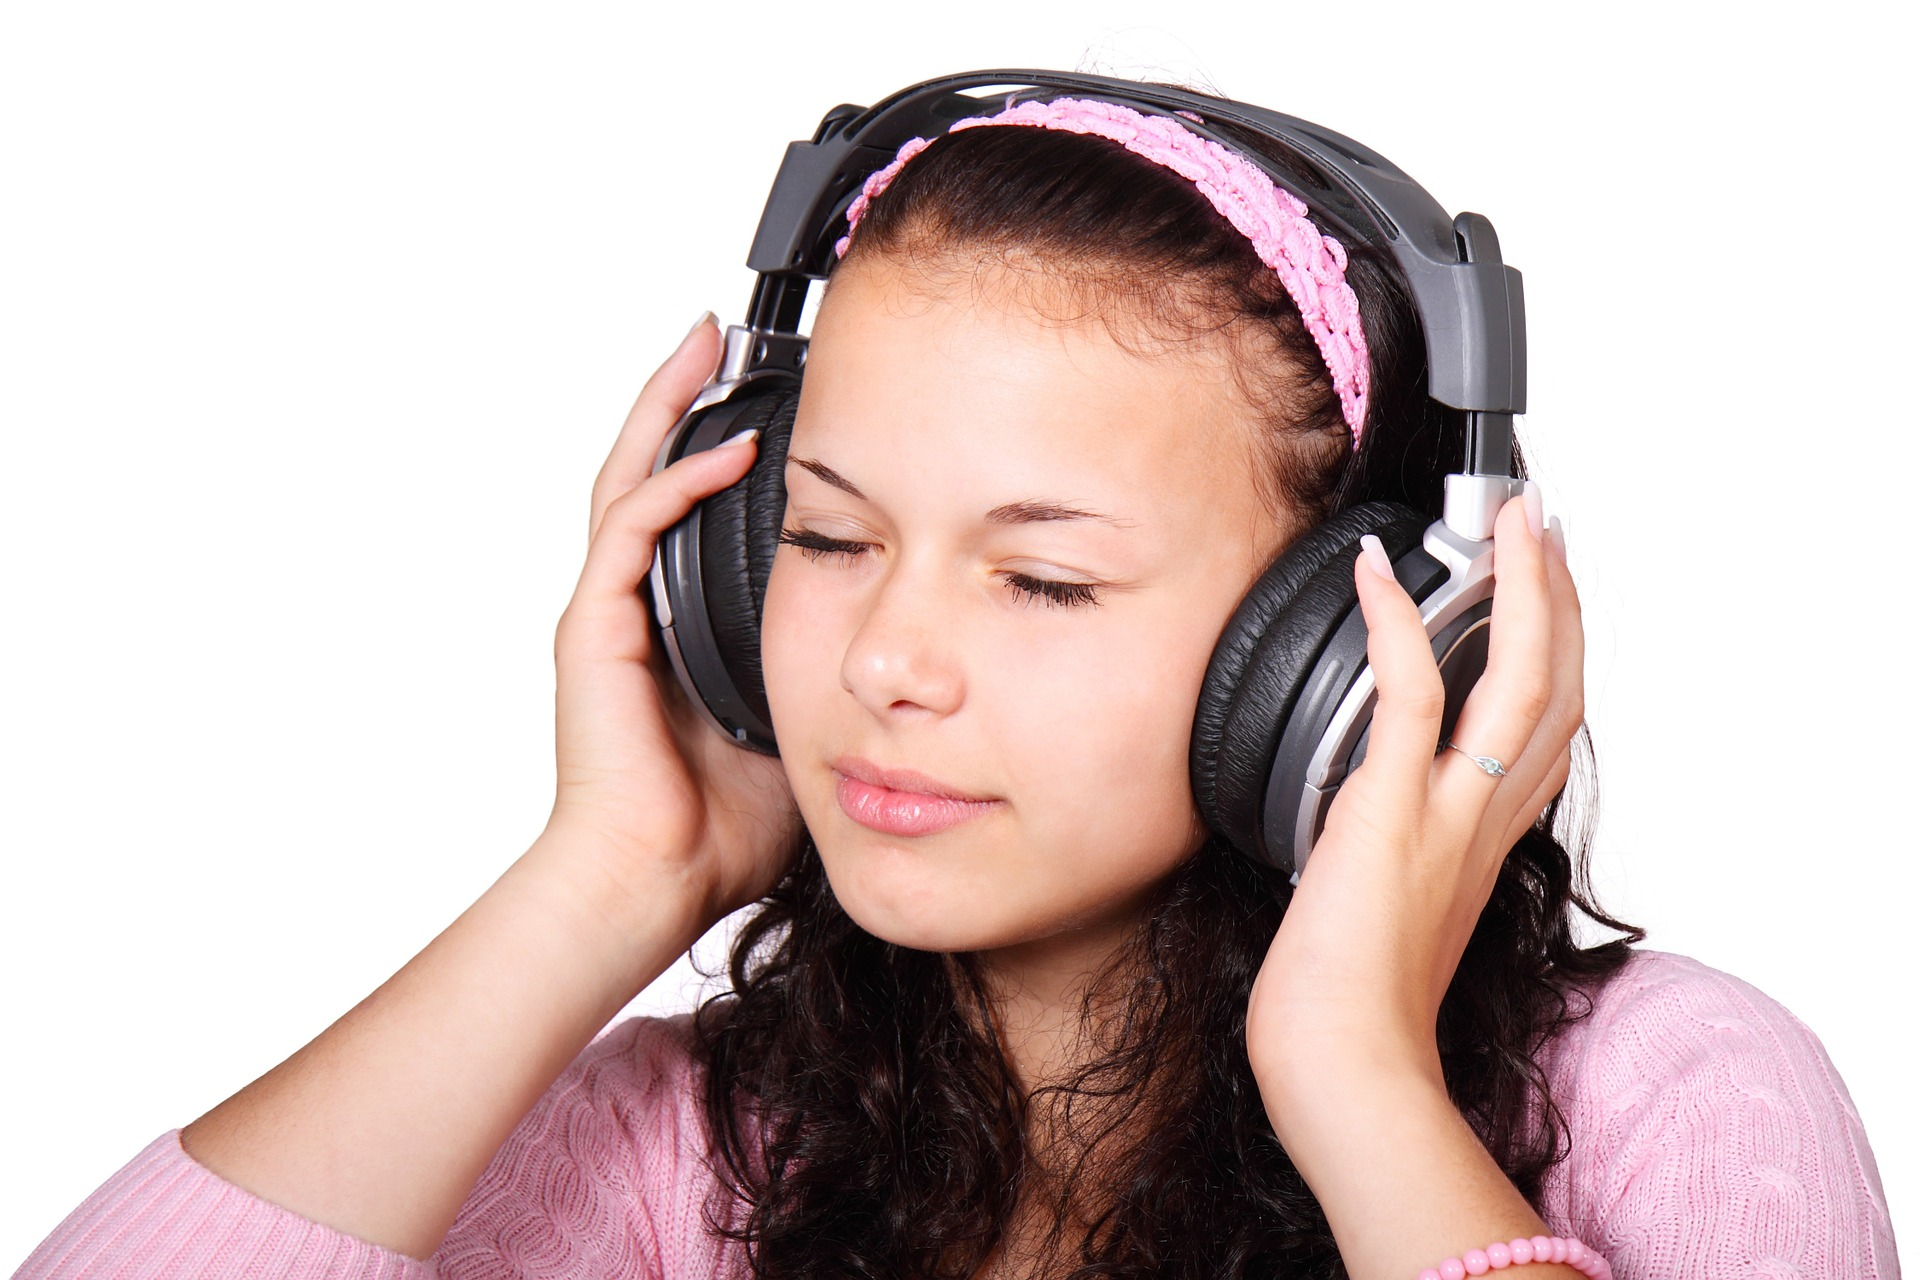 Chica con auriculares